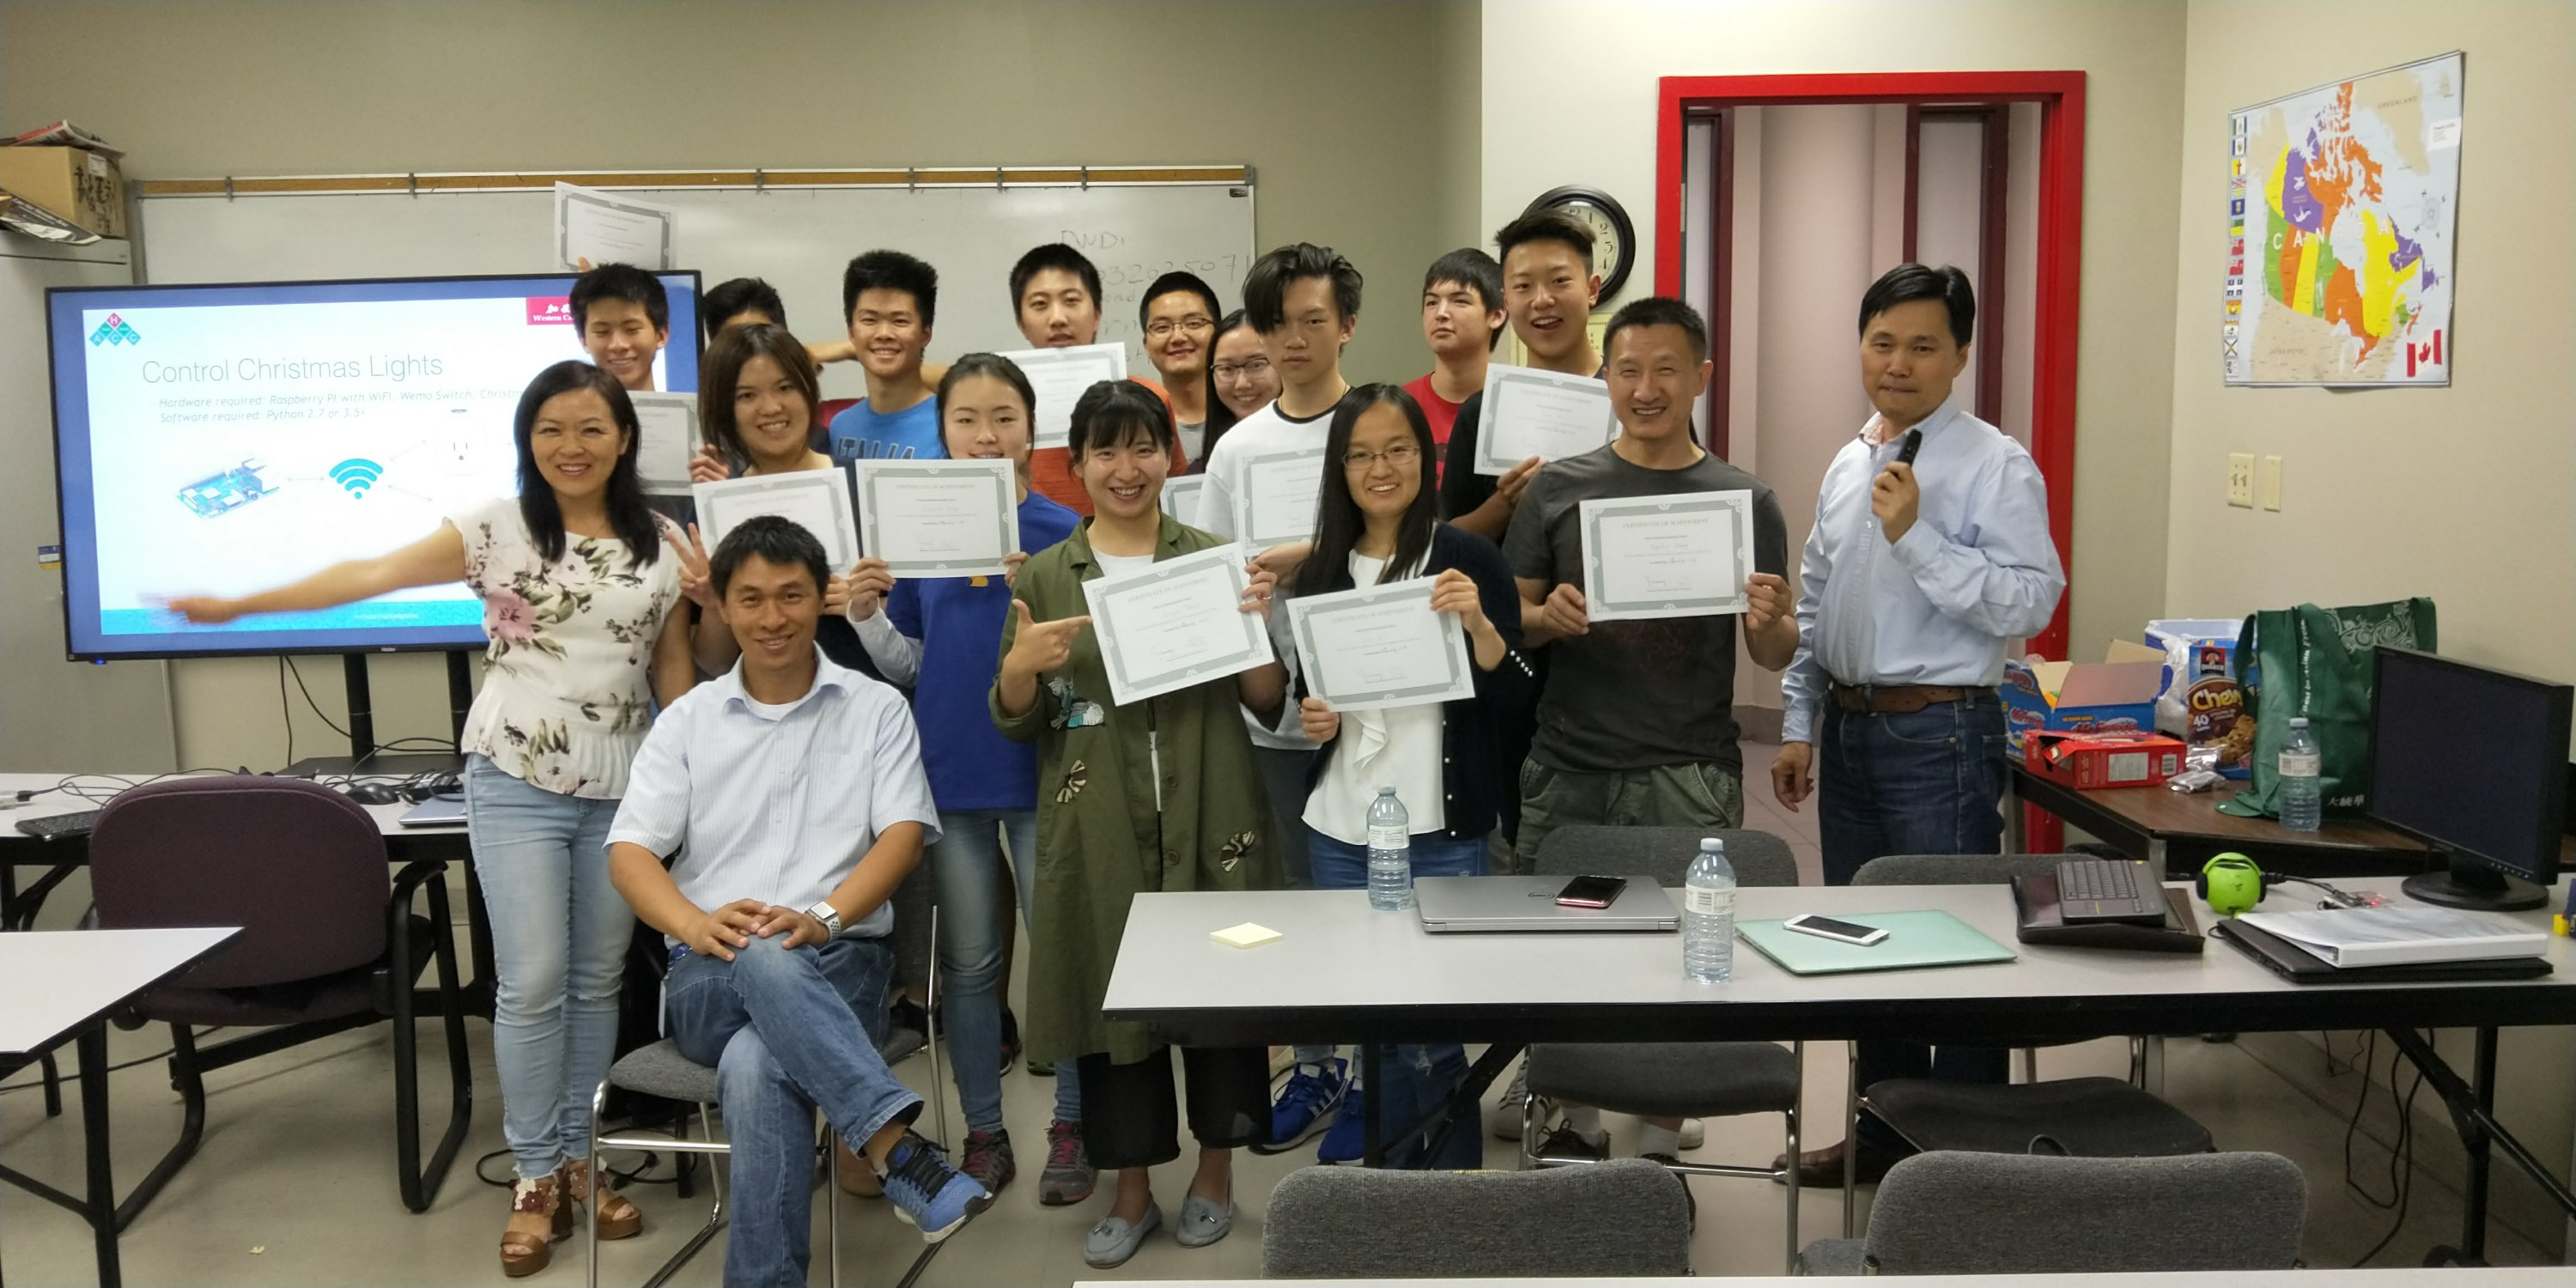 Python Fundamentals Class 201807 – Western Canada Hunan Association